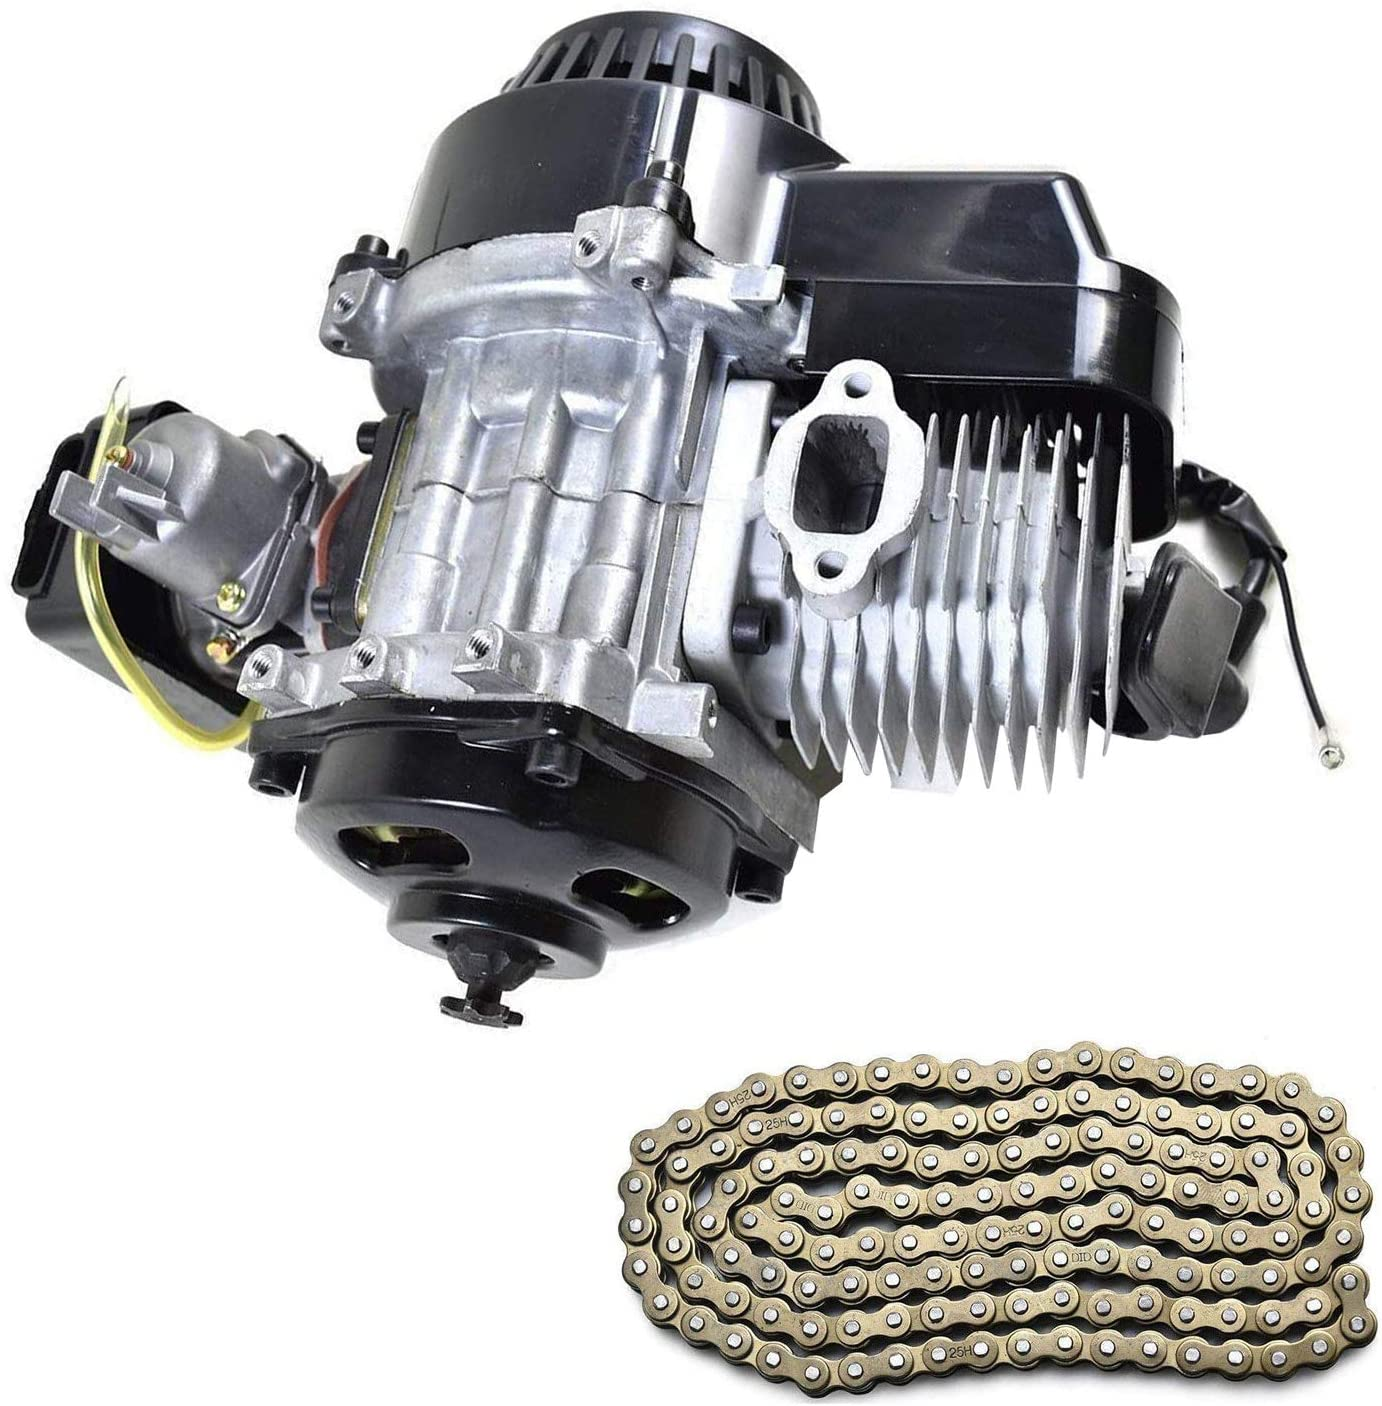 TDPRO 47cc 49cc 2-Stroke Engine Motor and 25H 136L Chain for Mini Pocket Bike Scooter Dirt Bikes ATV Quad Motorized Bicycle